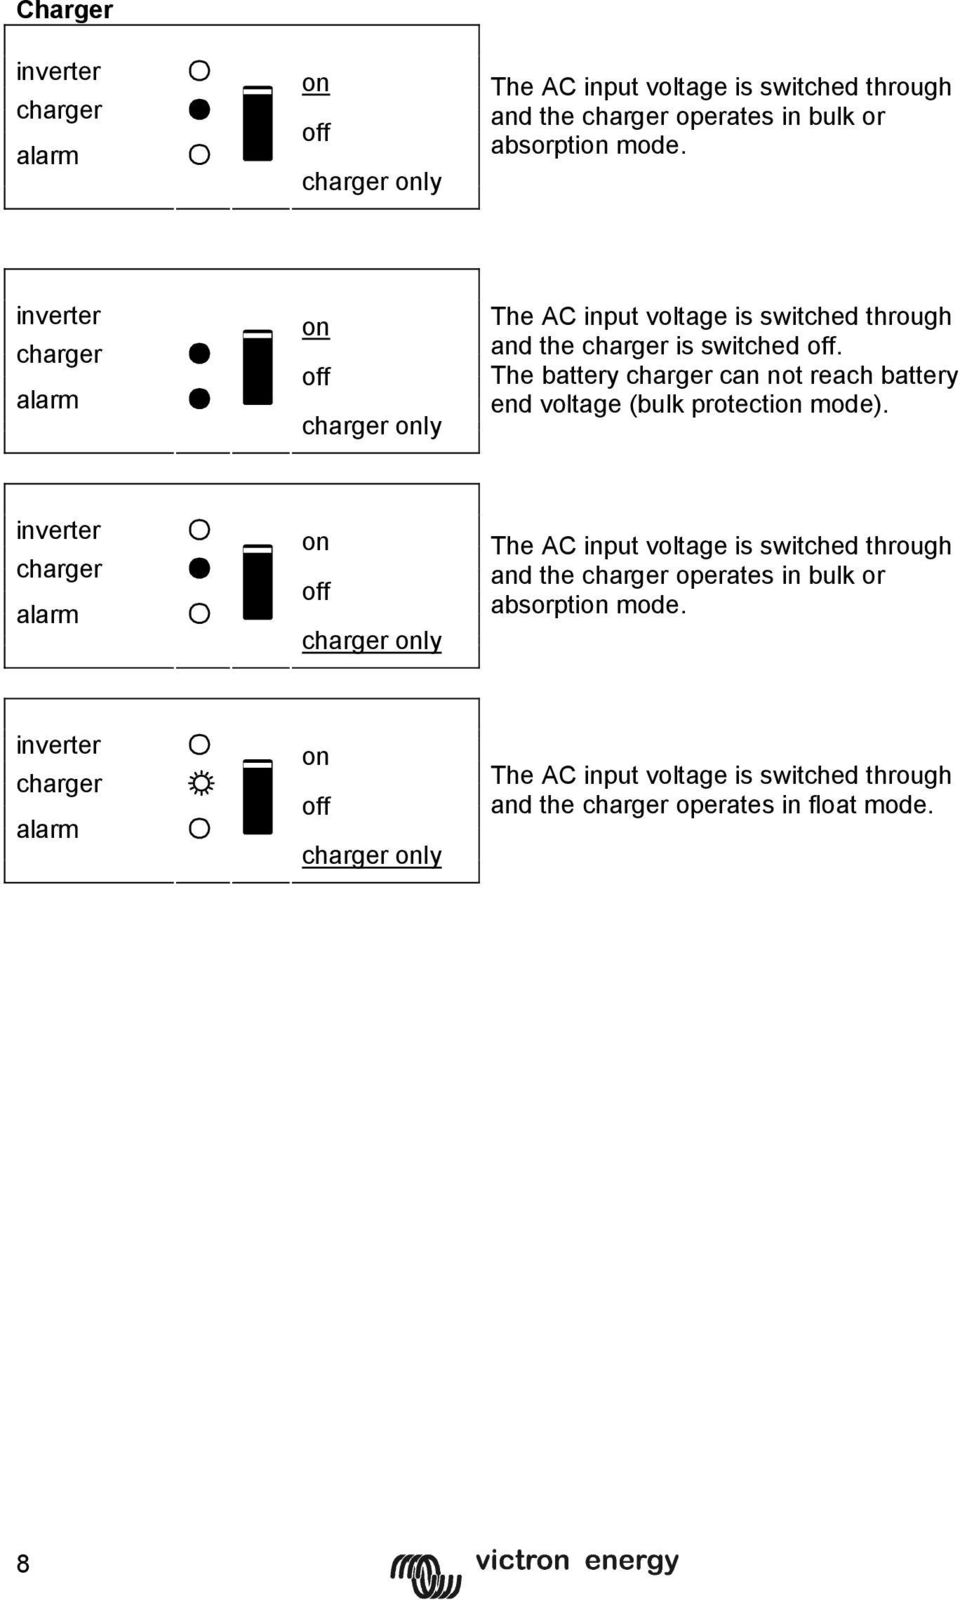 The battery charger can not reach battery end voltage (bulk protection mode).